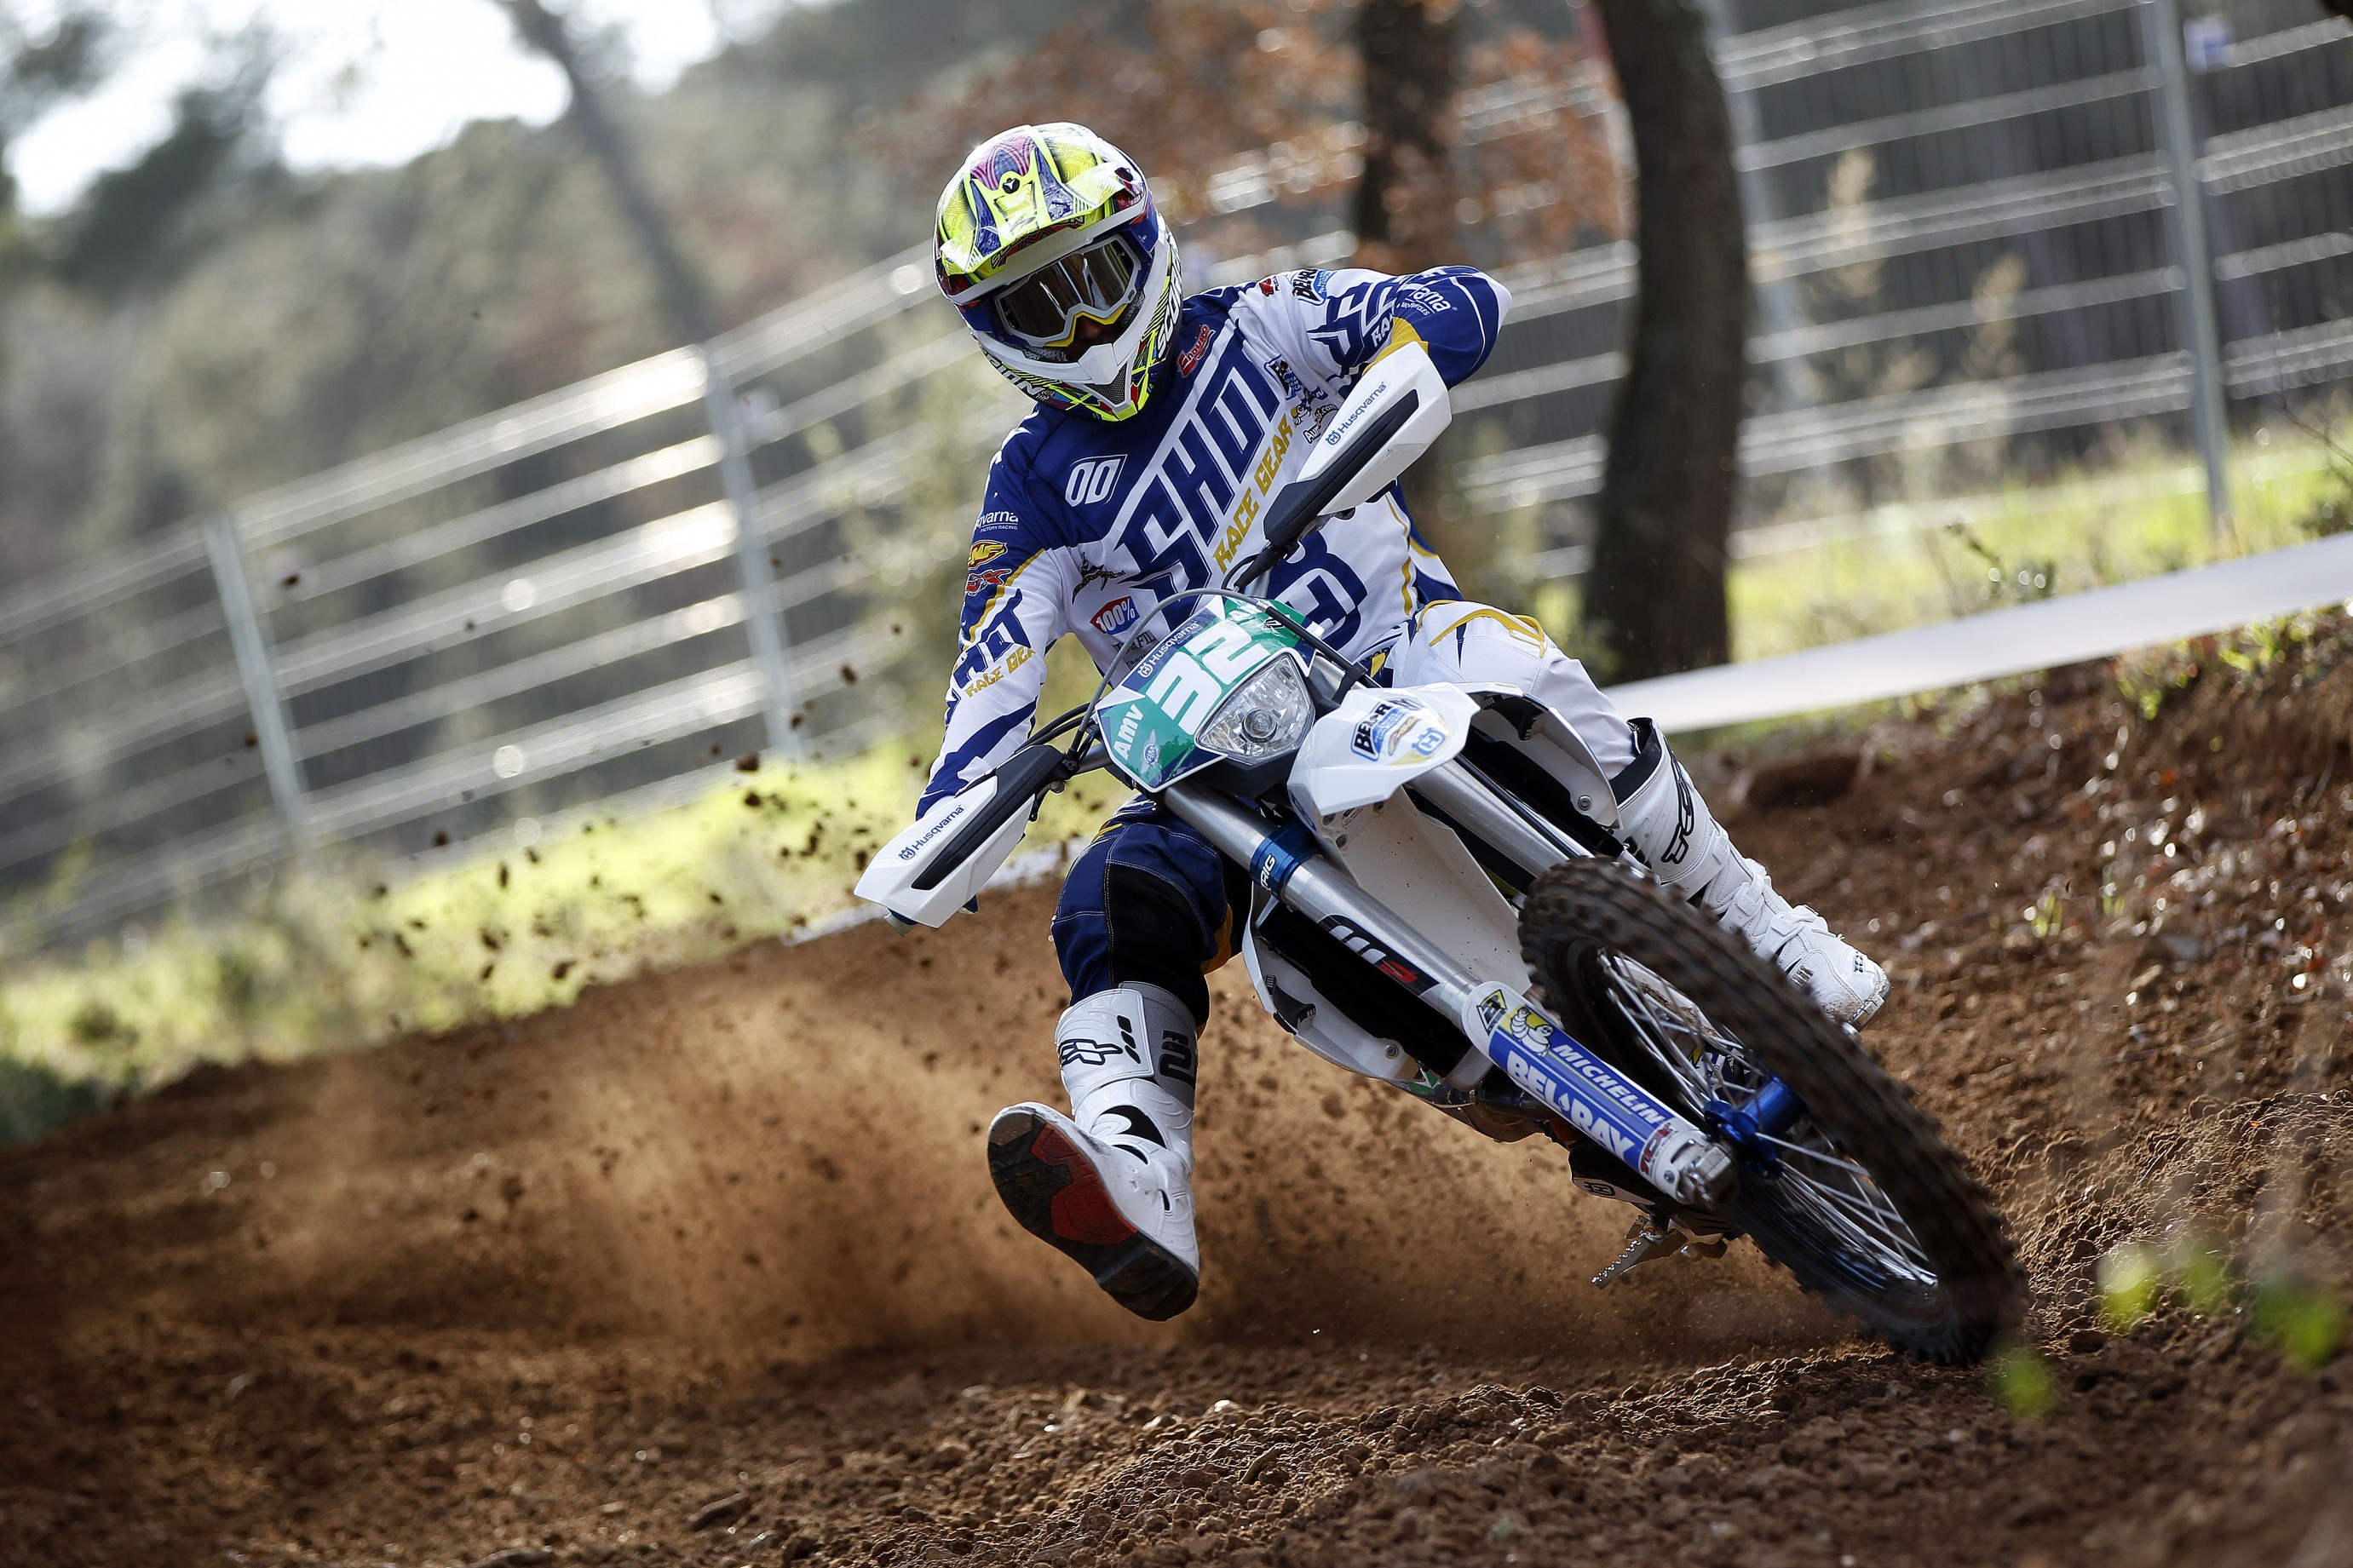 83783_loic.larrieu_Husqvarna_Enduro_Team_Photo-Shoot_2014_2377_2762